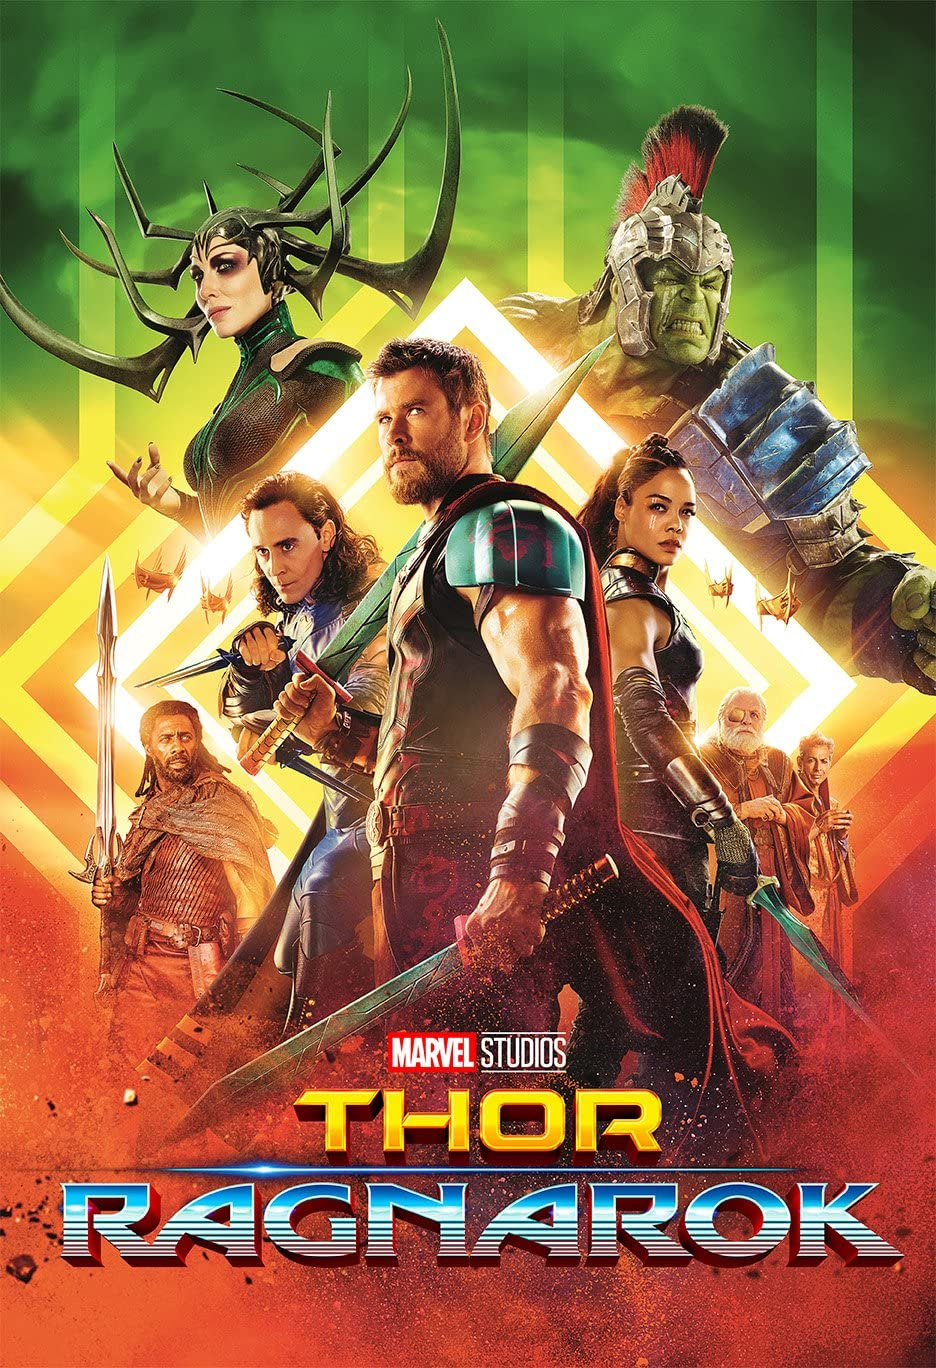 Movie Poster Thor 3 : Ragnarok (2017) - All - 13 in x 19 in Flyer Borderless + Free 1 Tile Magnet